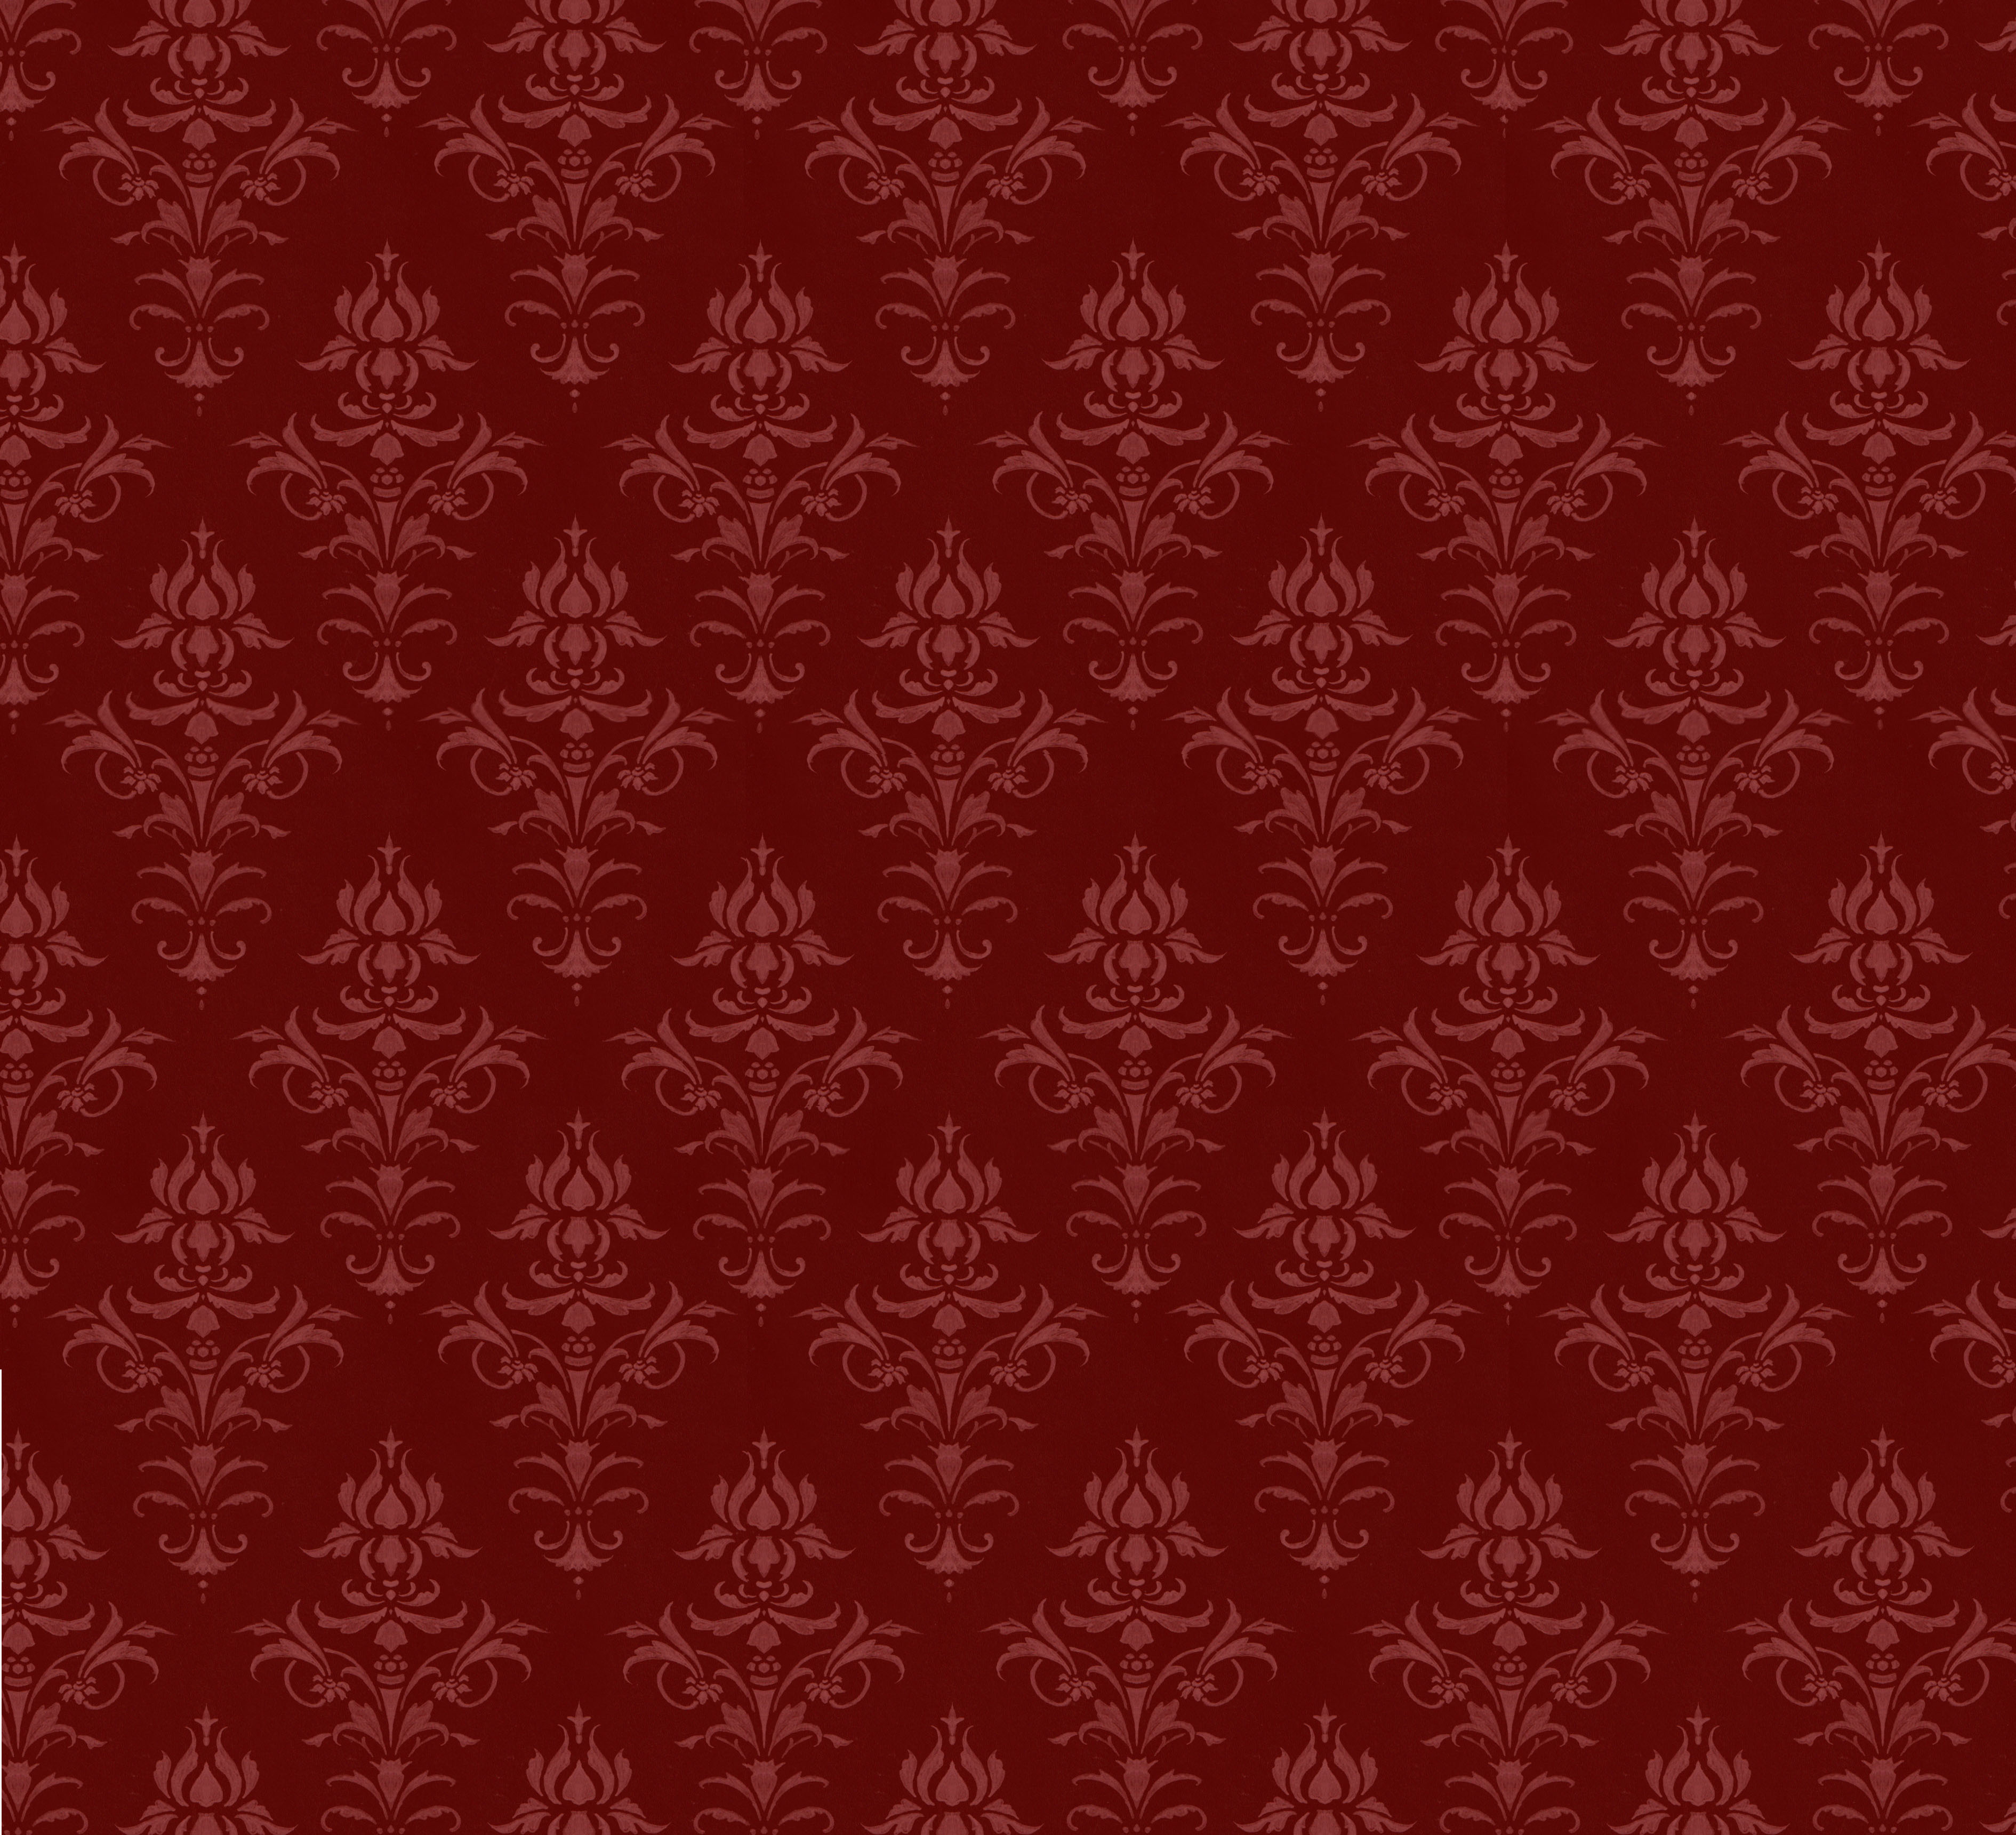 Free Download Victorian Wallpaper Patterns 3781x3441 For